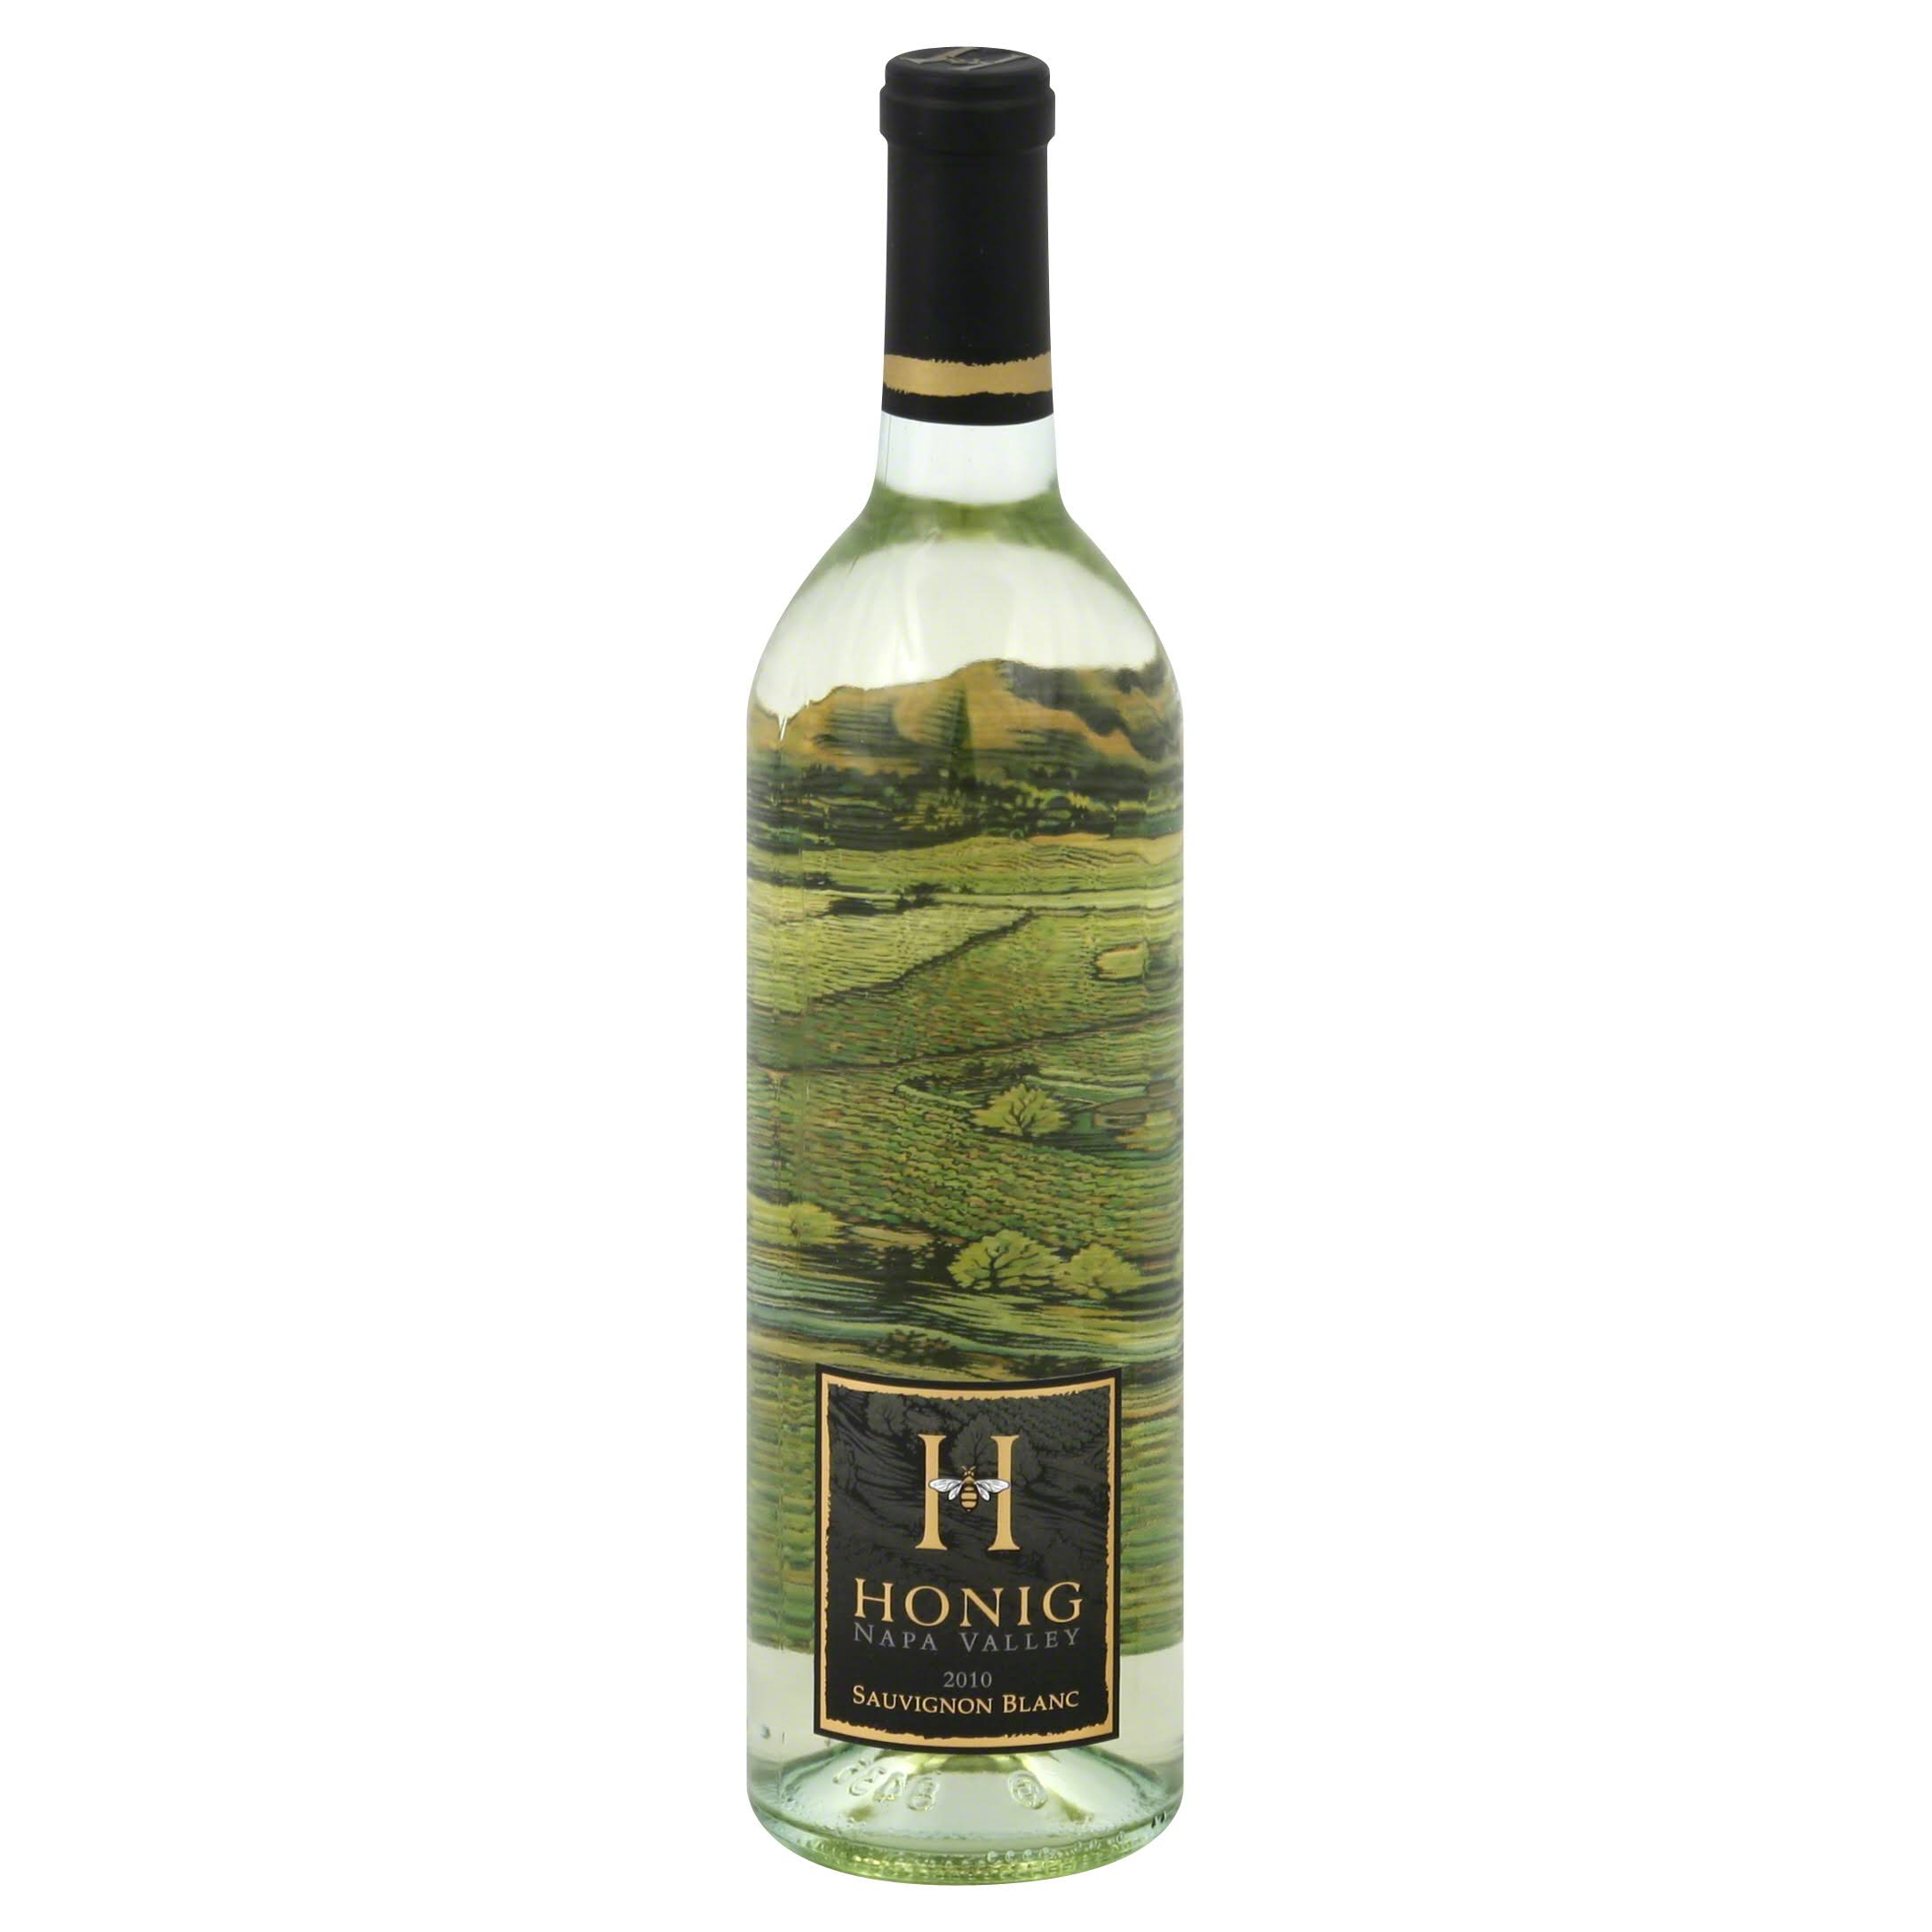 Honig Napa Valley Sauvignon Blanc Wine - 750ml